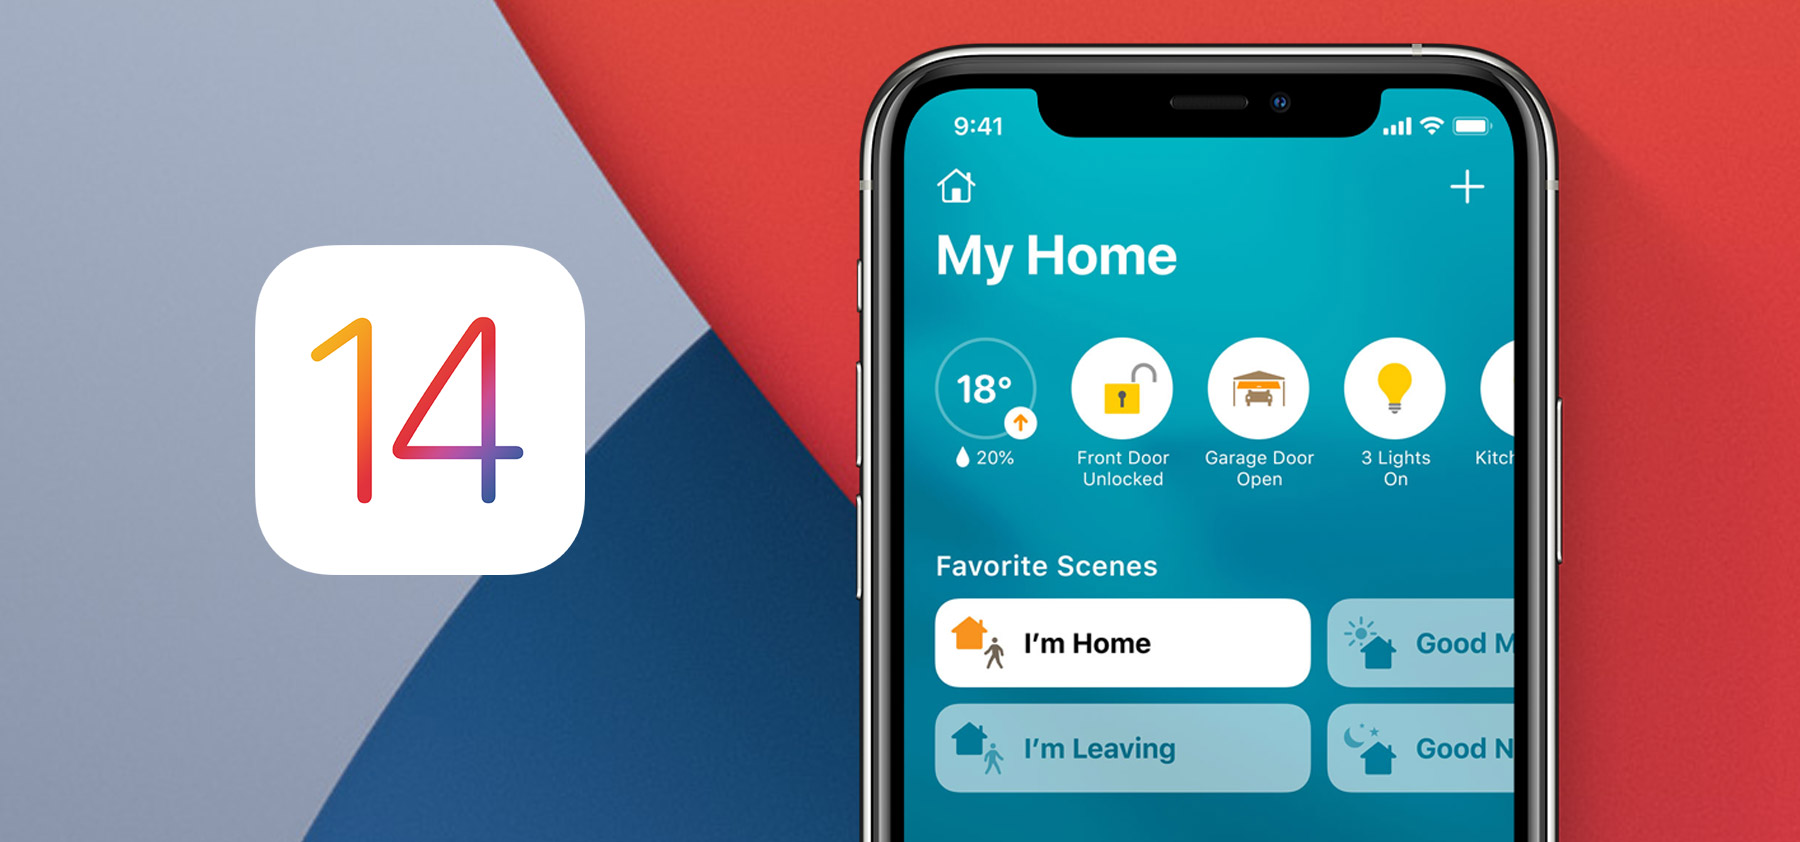 iOS 14 Home app on iPhone